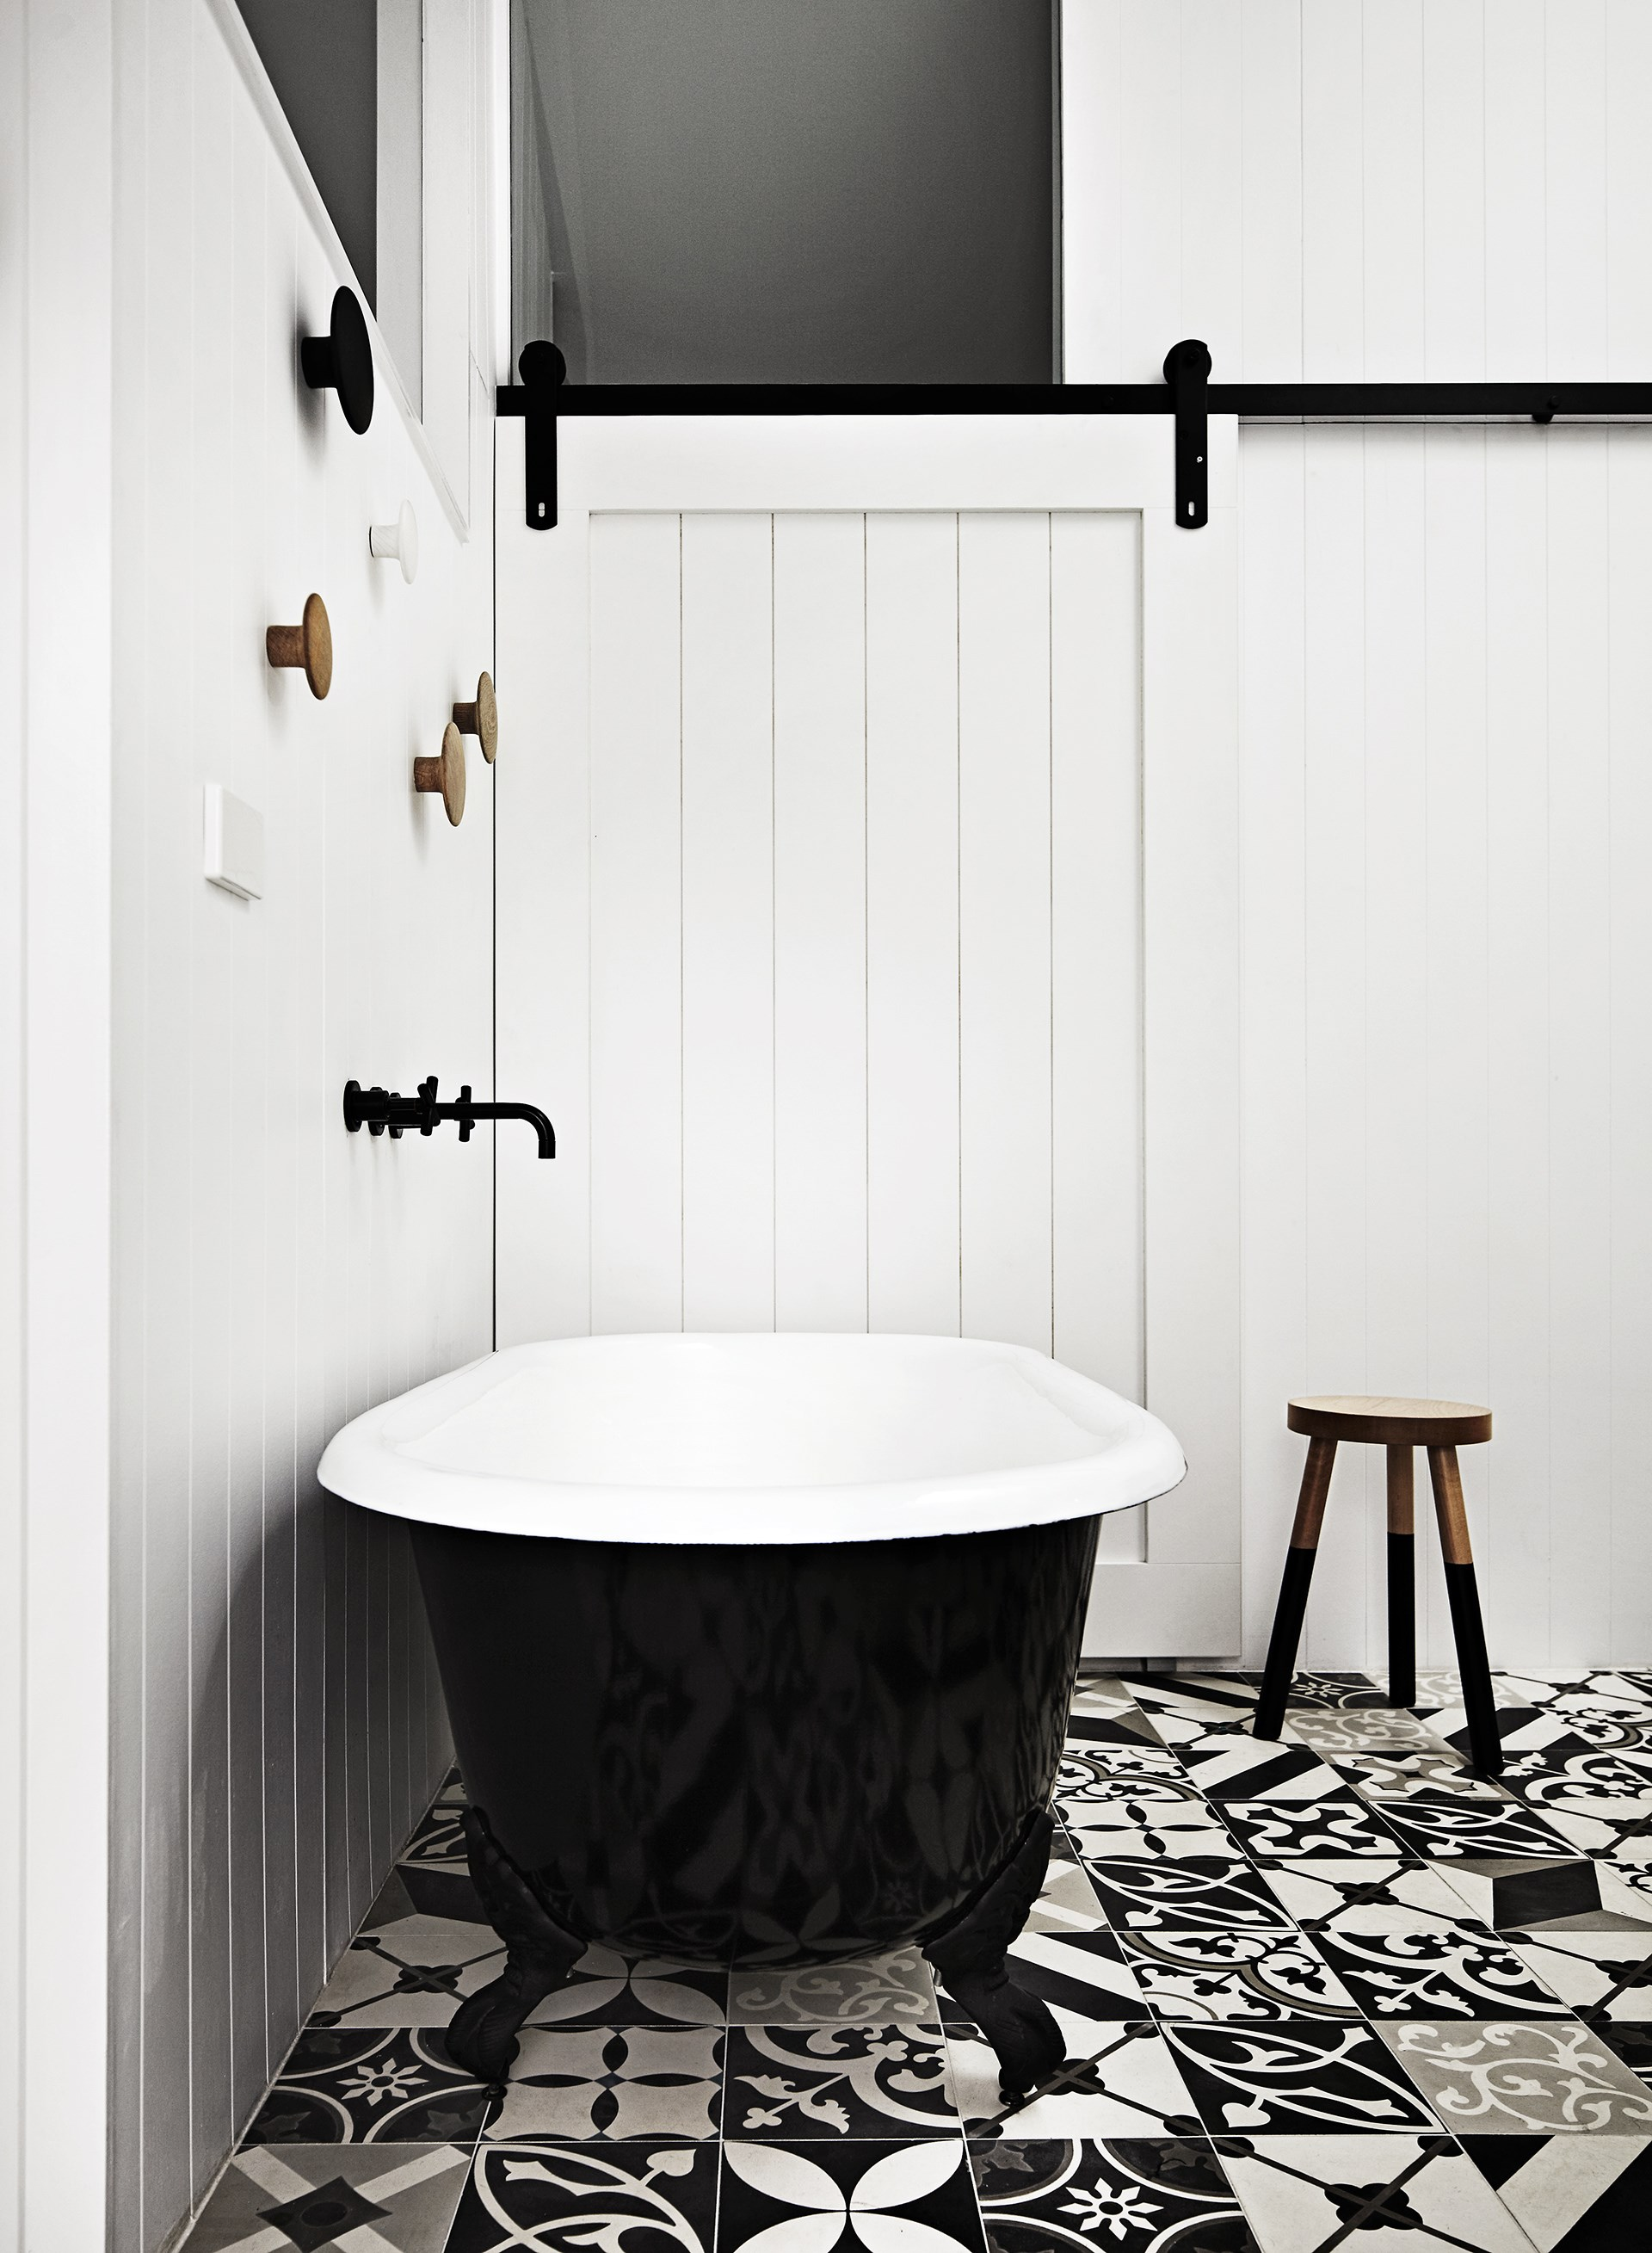 The desire to build a city home with a holiday-house vibe rings true in the charming monochrome bathroom of this [Melbourne home](http://www.homestolove.com.au/architects-at-home-steven-and-carole-whiting-2560) designed by Steven and Carole Whiting of [Whiting Architects](http://whitingarchitects.com/?utm_campaign=supplier). Photo: Sharyn Cairns